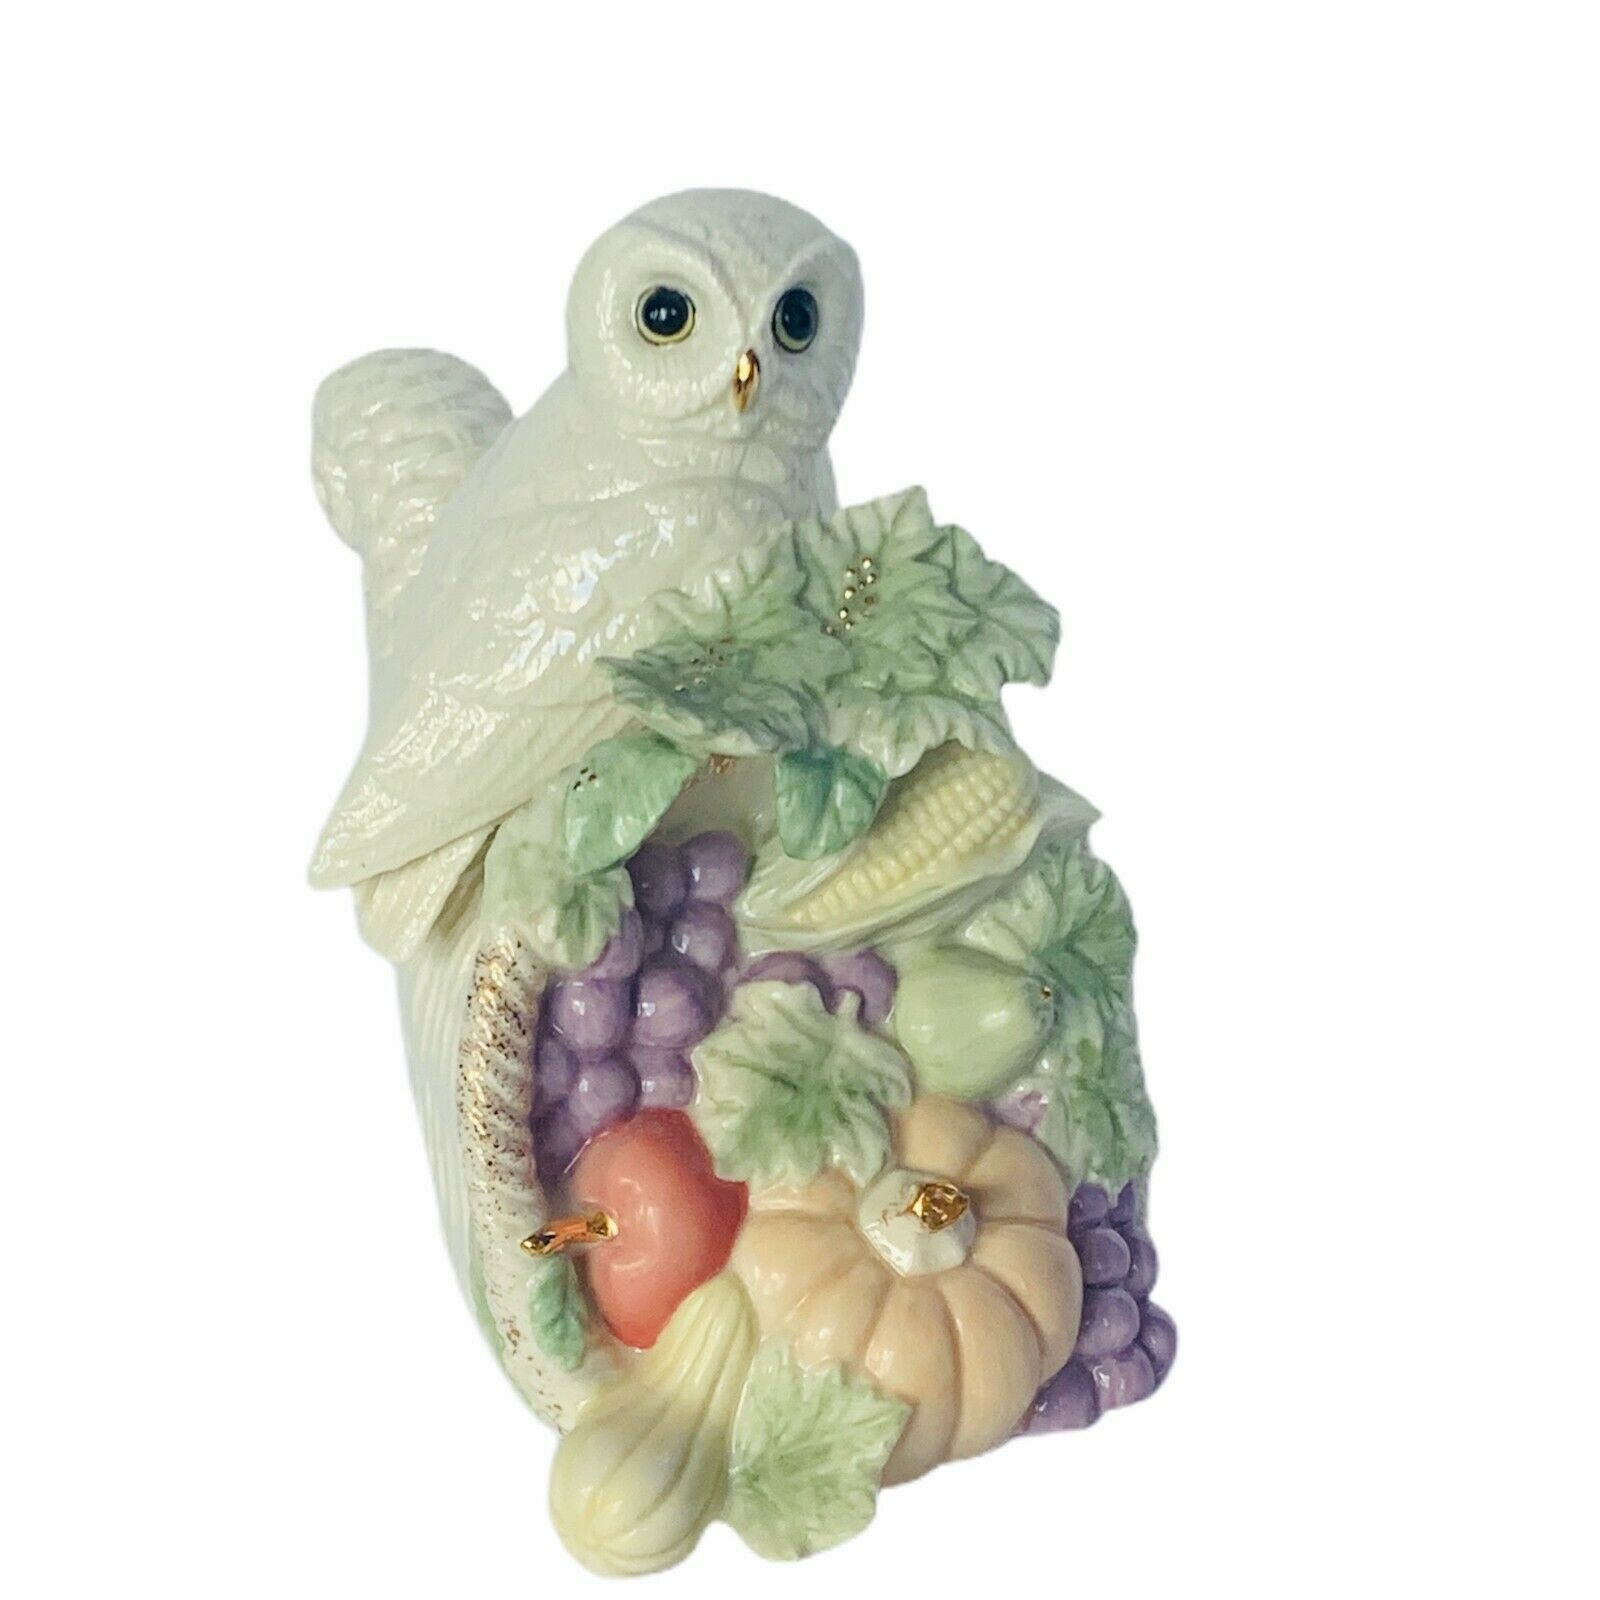 Primary image for Owl figurine Lenox 2006 music box cornucopia snow white bird sculpture fruit vtg